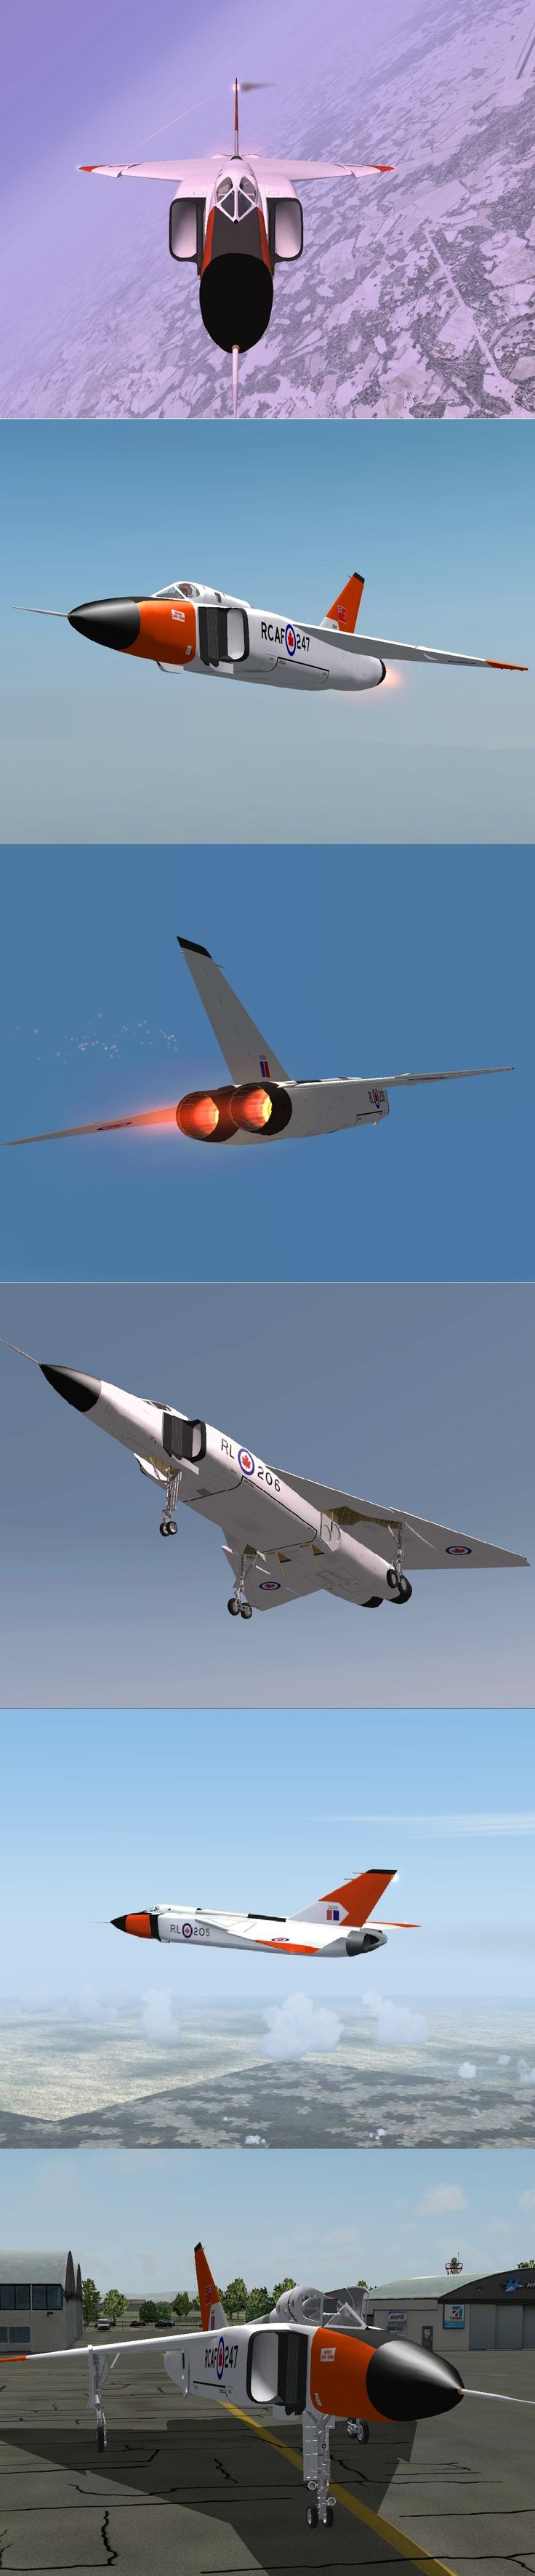 Canada CF 105 Arrow render